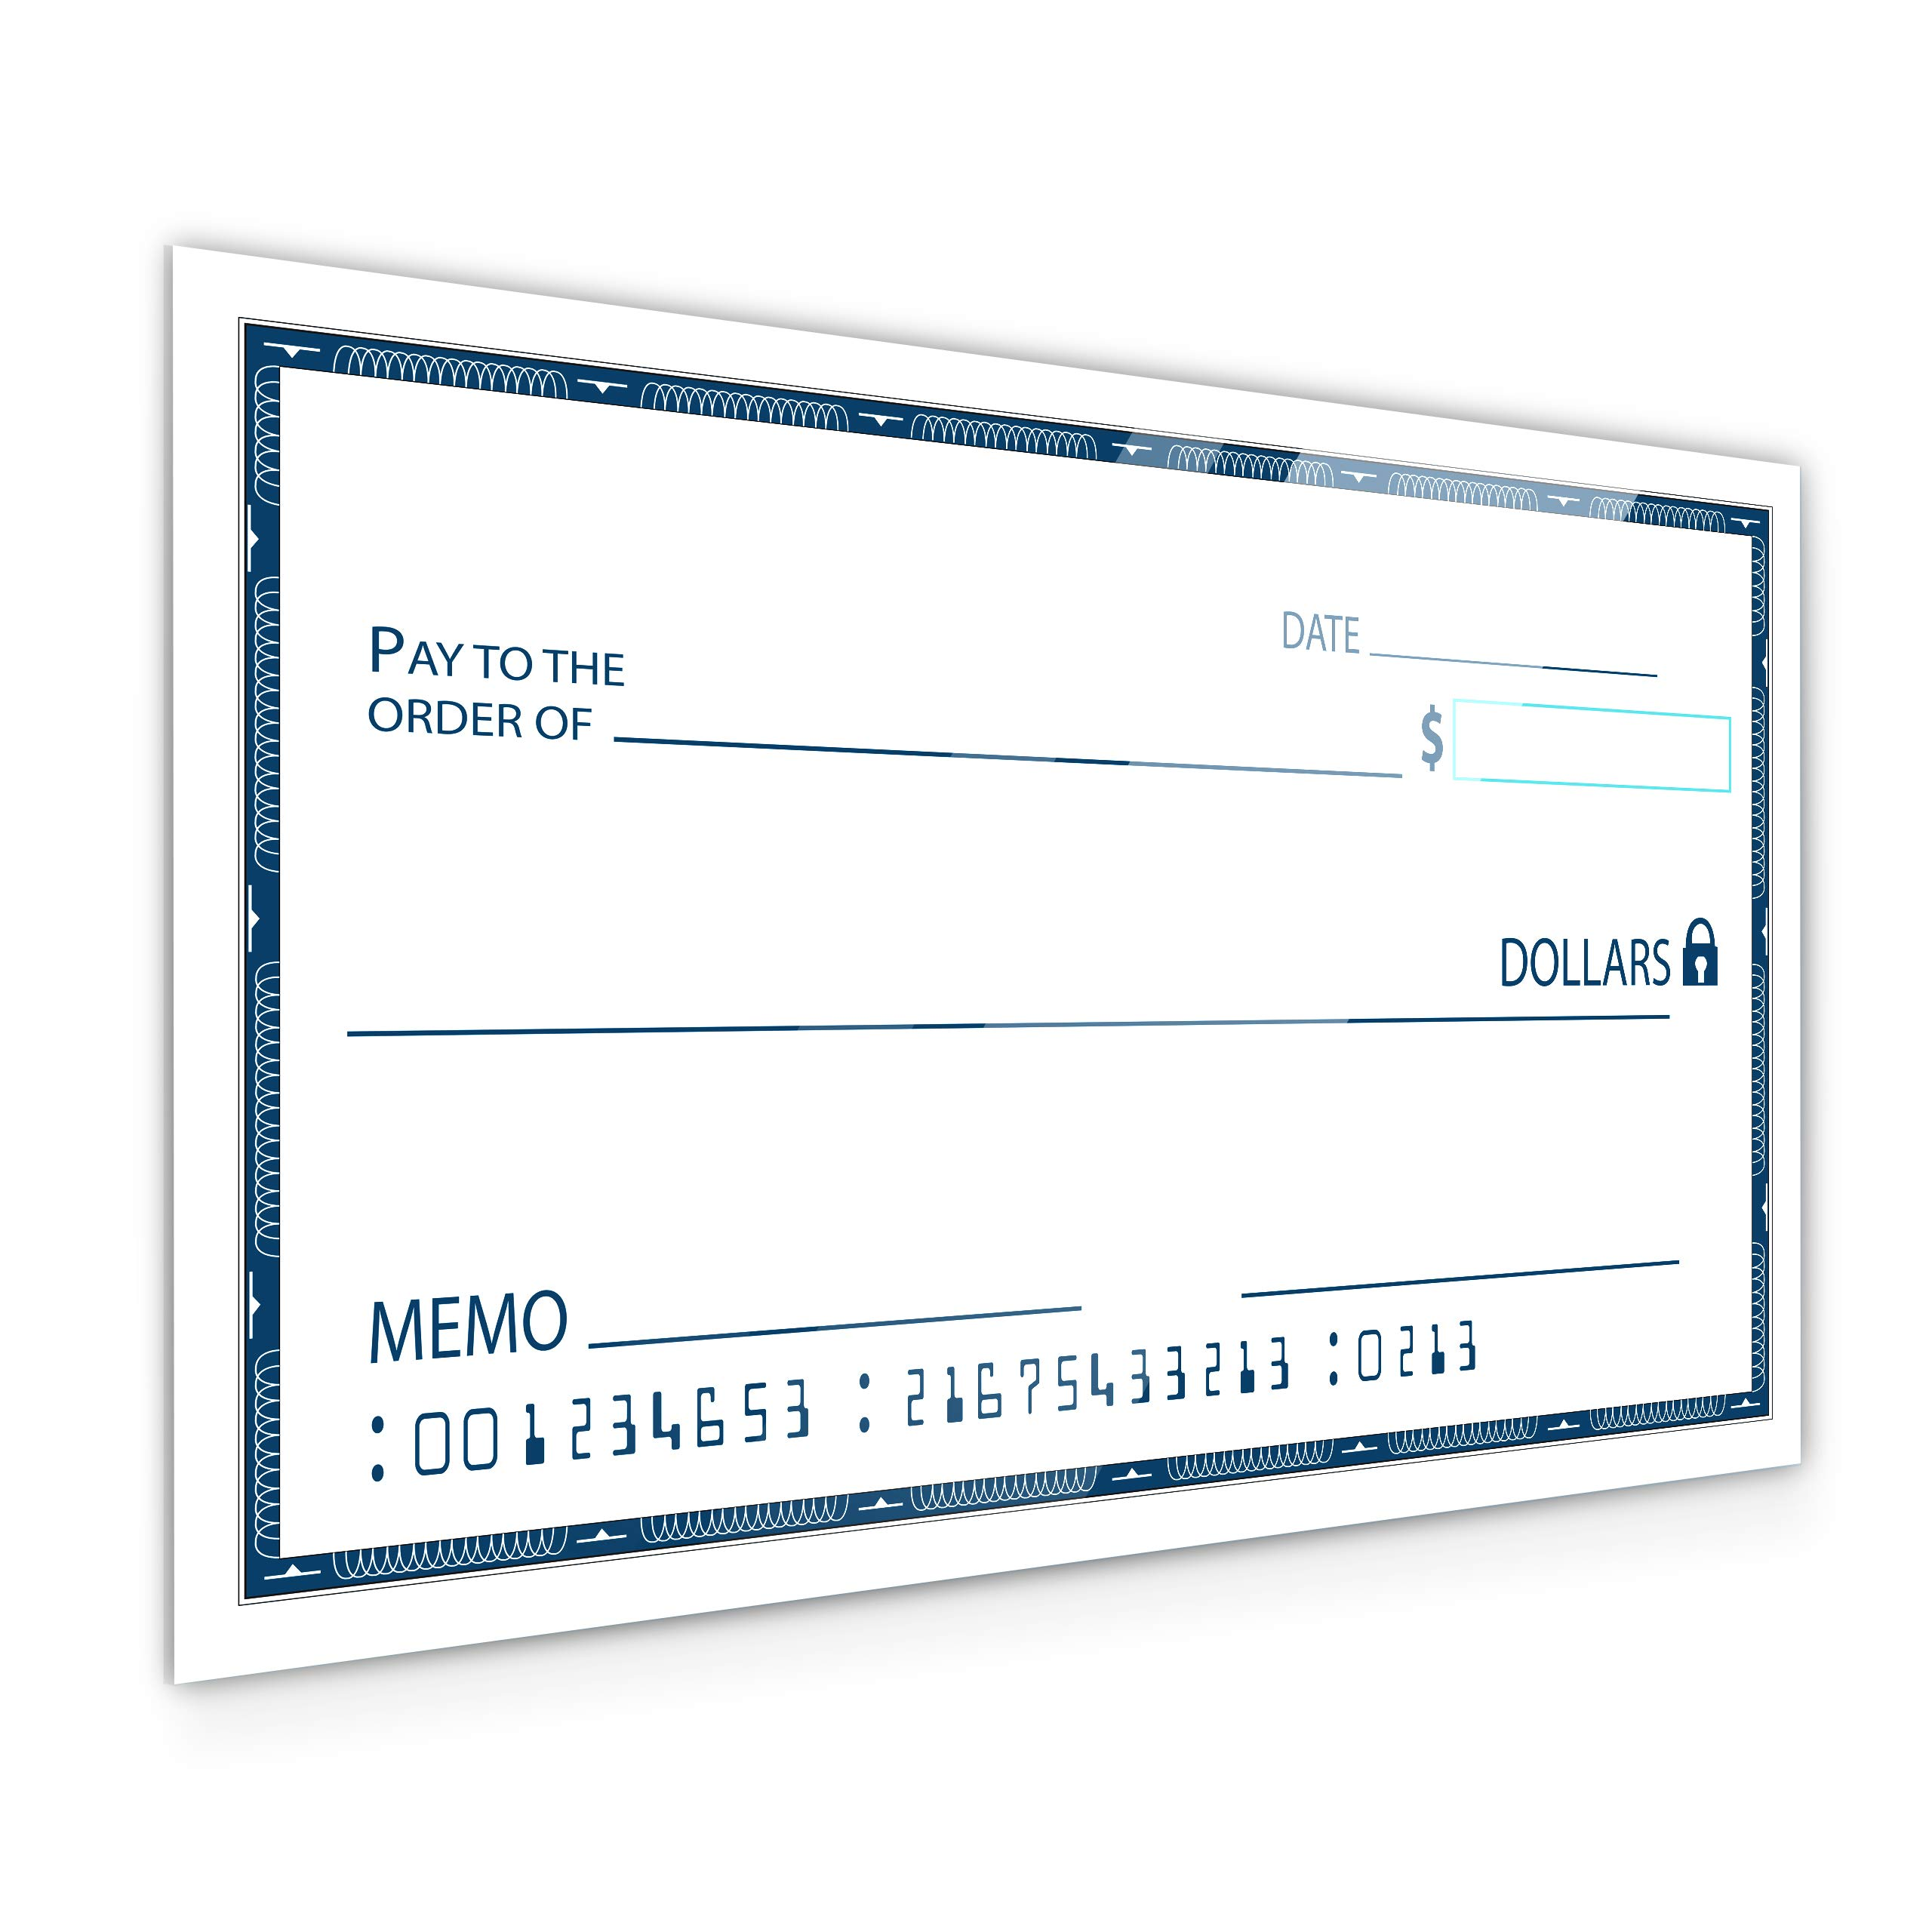 [Dry Erase] 24'' x 48'' Oversize Giant Check - Large Fake Checks - Reusable Big Blank Presentation Check for Charity Donation, Lottery, Raffle, Novelty, Fundraiser, Endowment, Gag Gift (White) (1) by JJ CARE